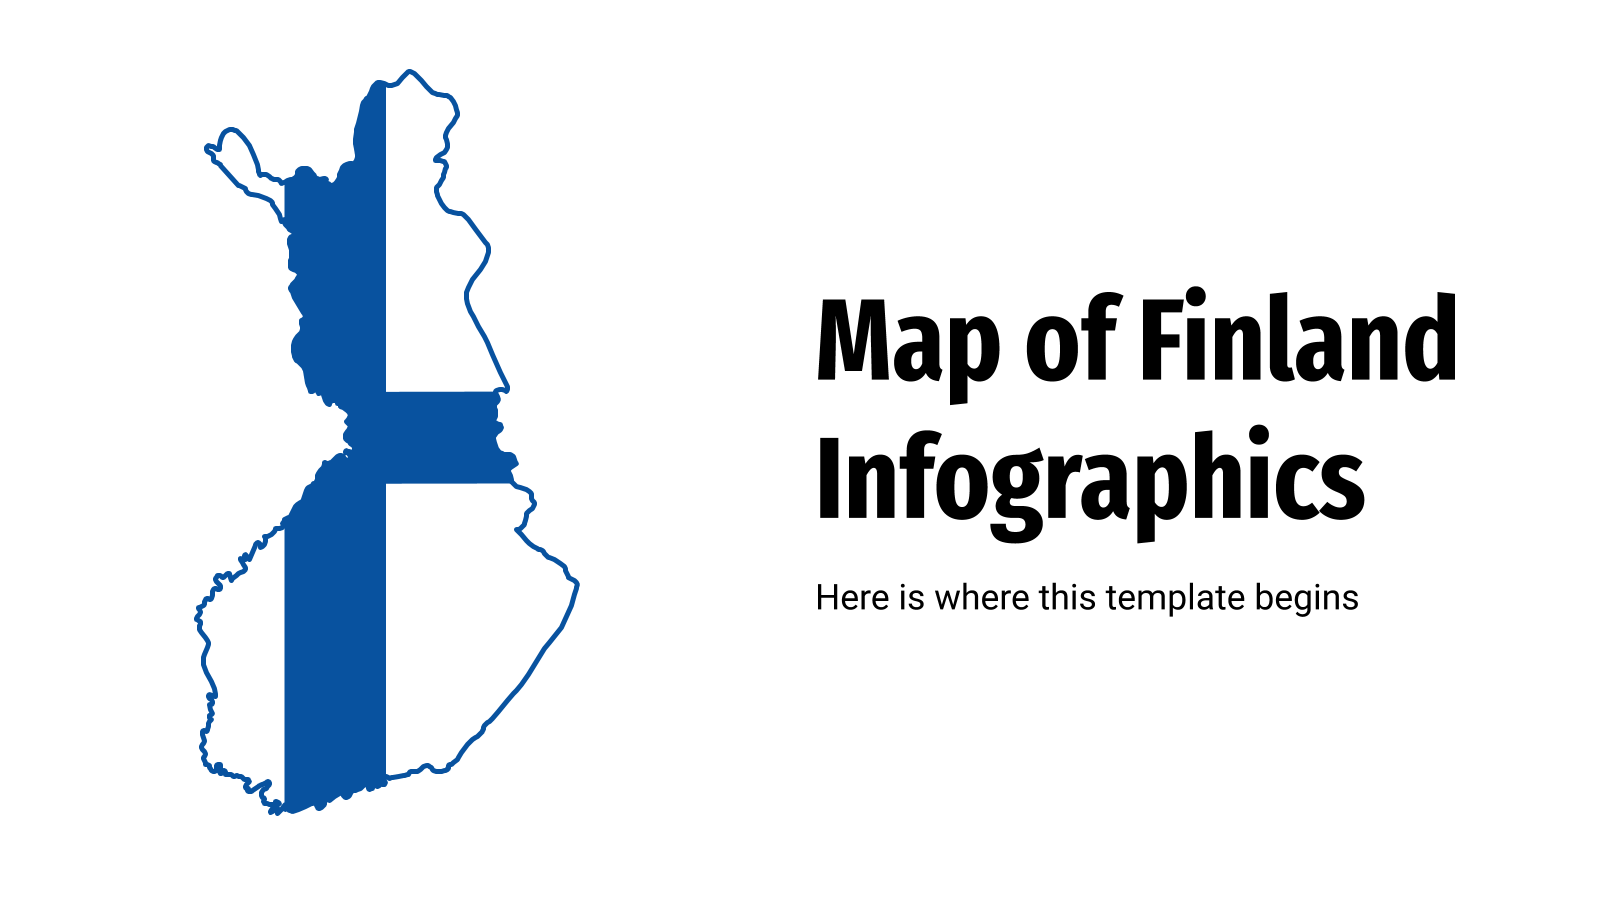 Map of Finland Infographics presentation template